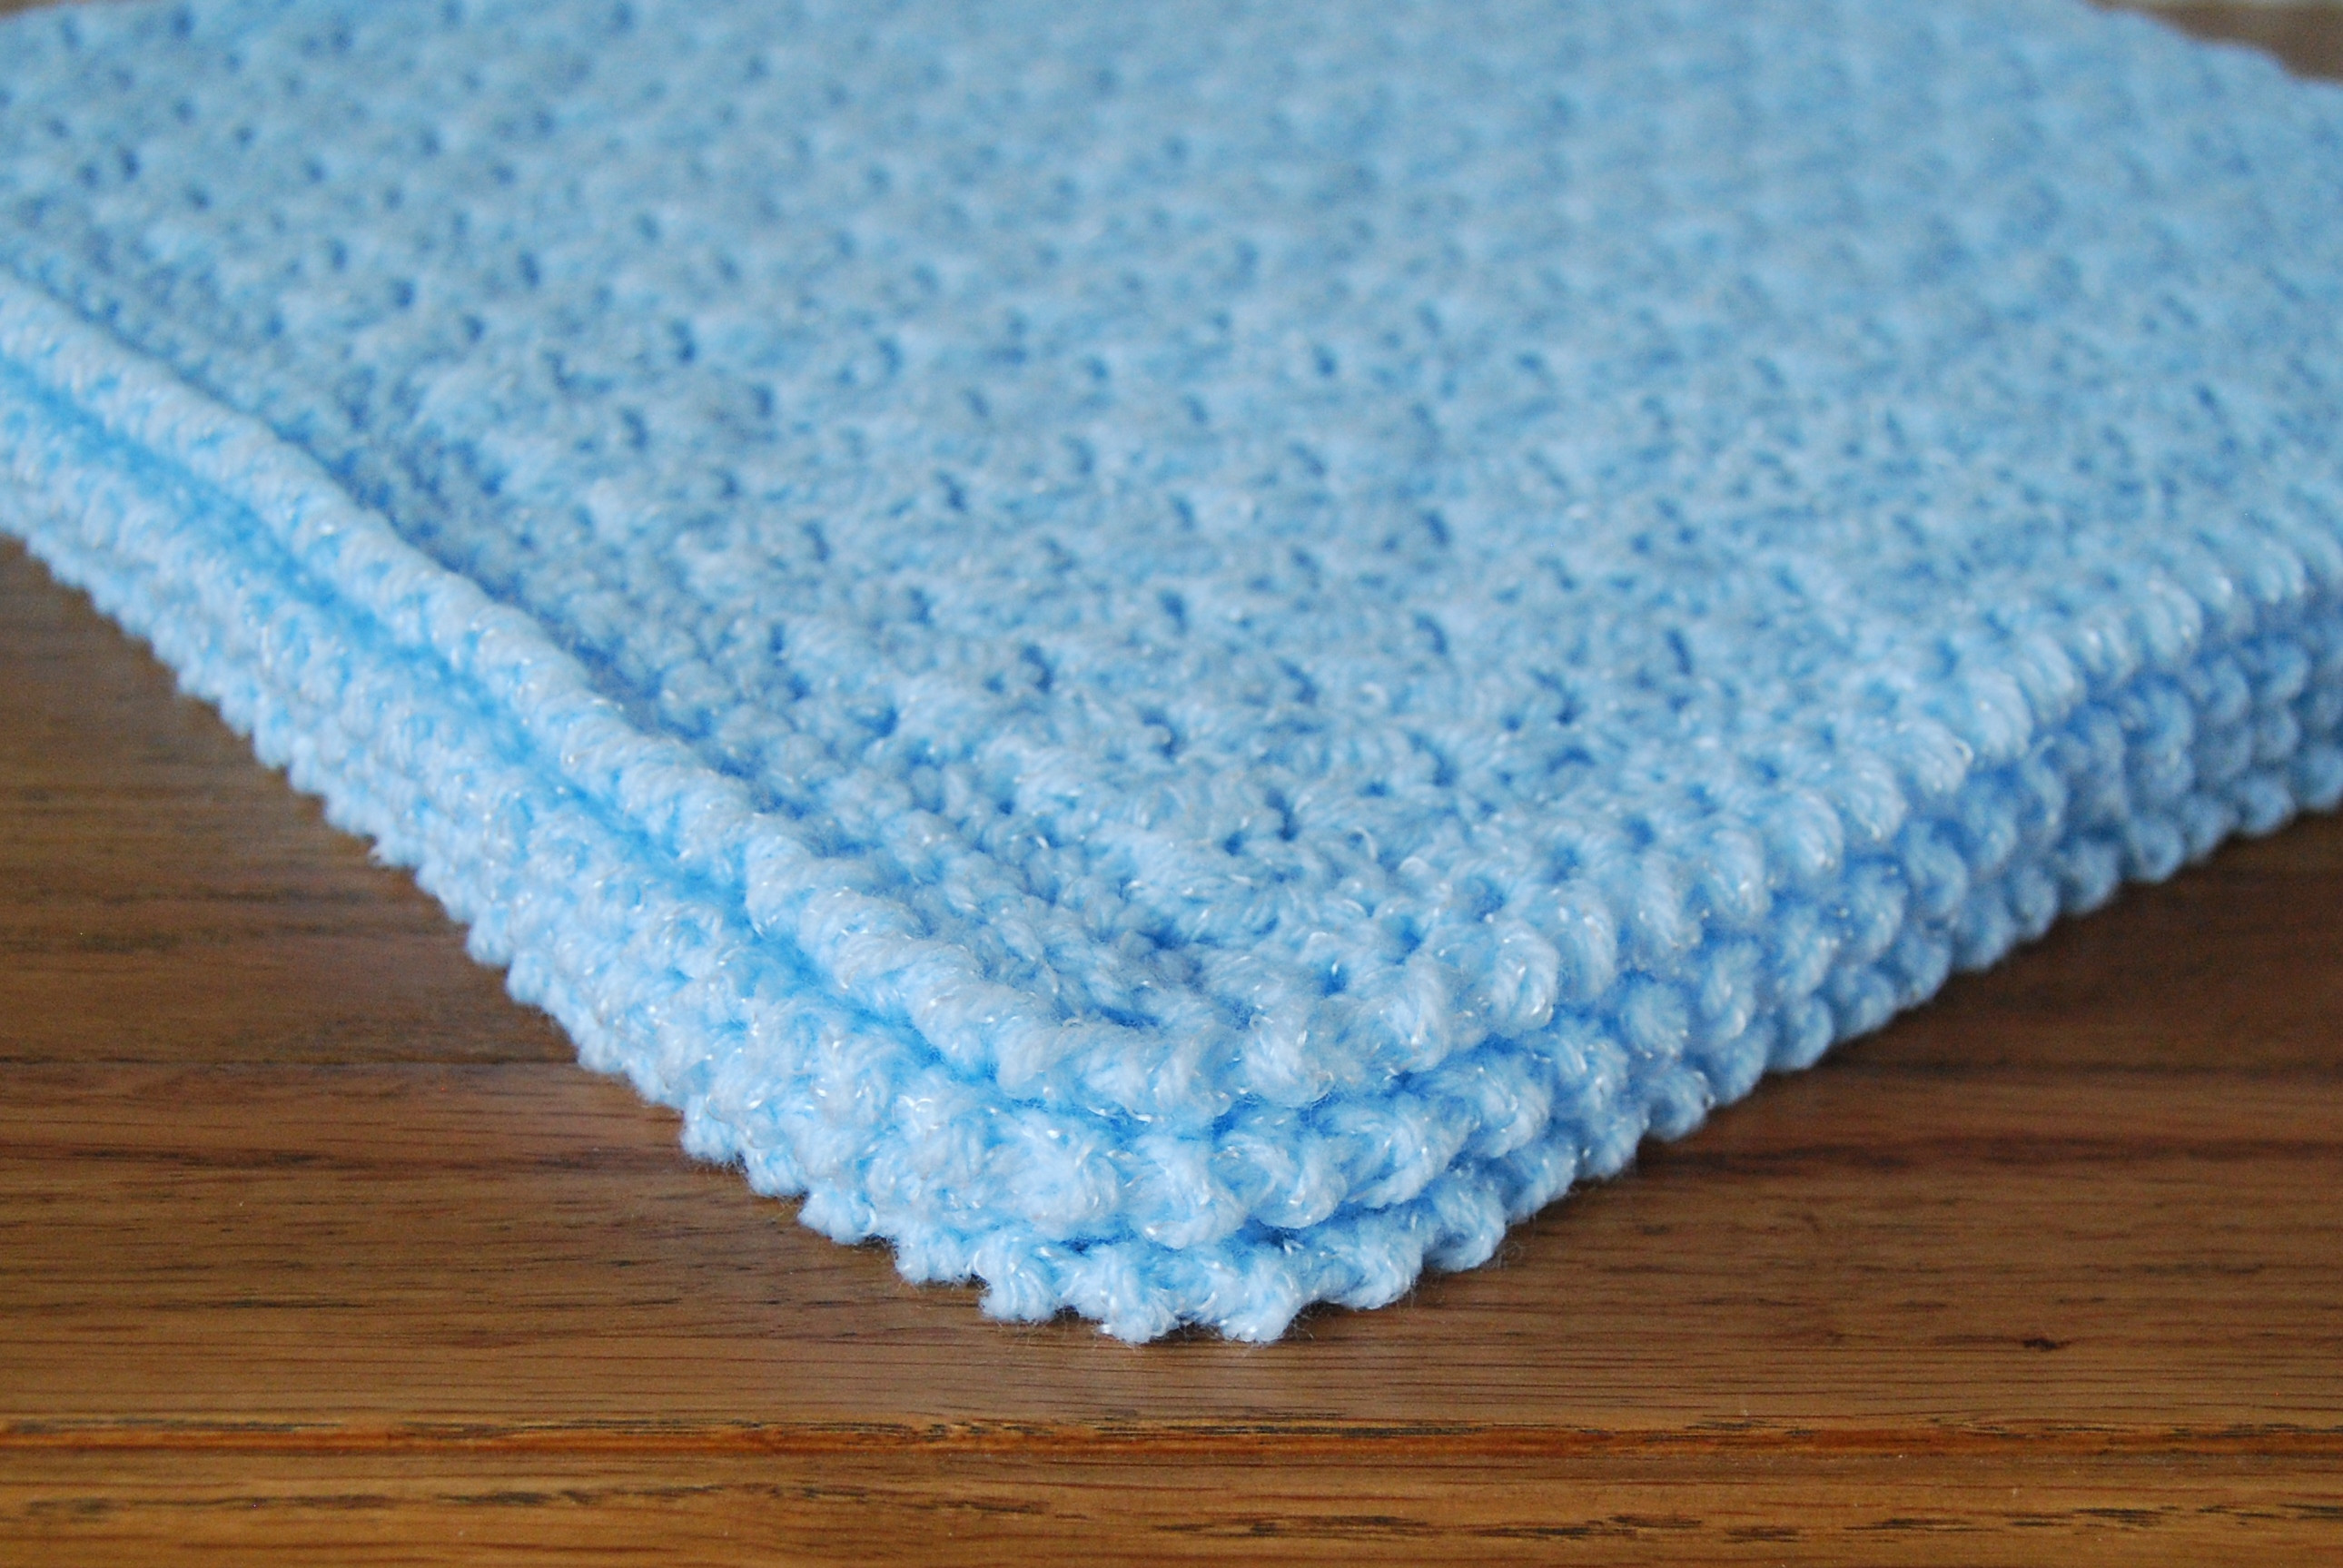 Baby Boy Crochet Blanket Patterns Lovely Beautiful Baby Boy Blanket Crochet Pattern for Pram Of Baby Boy Crochet Blanket Patterns New Free Baby Boy Crochet Blanket Patterns